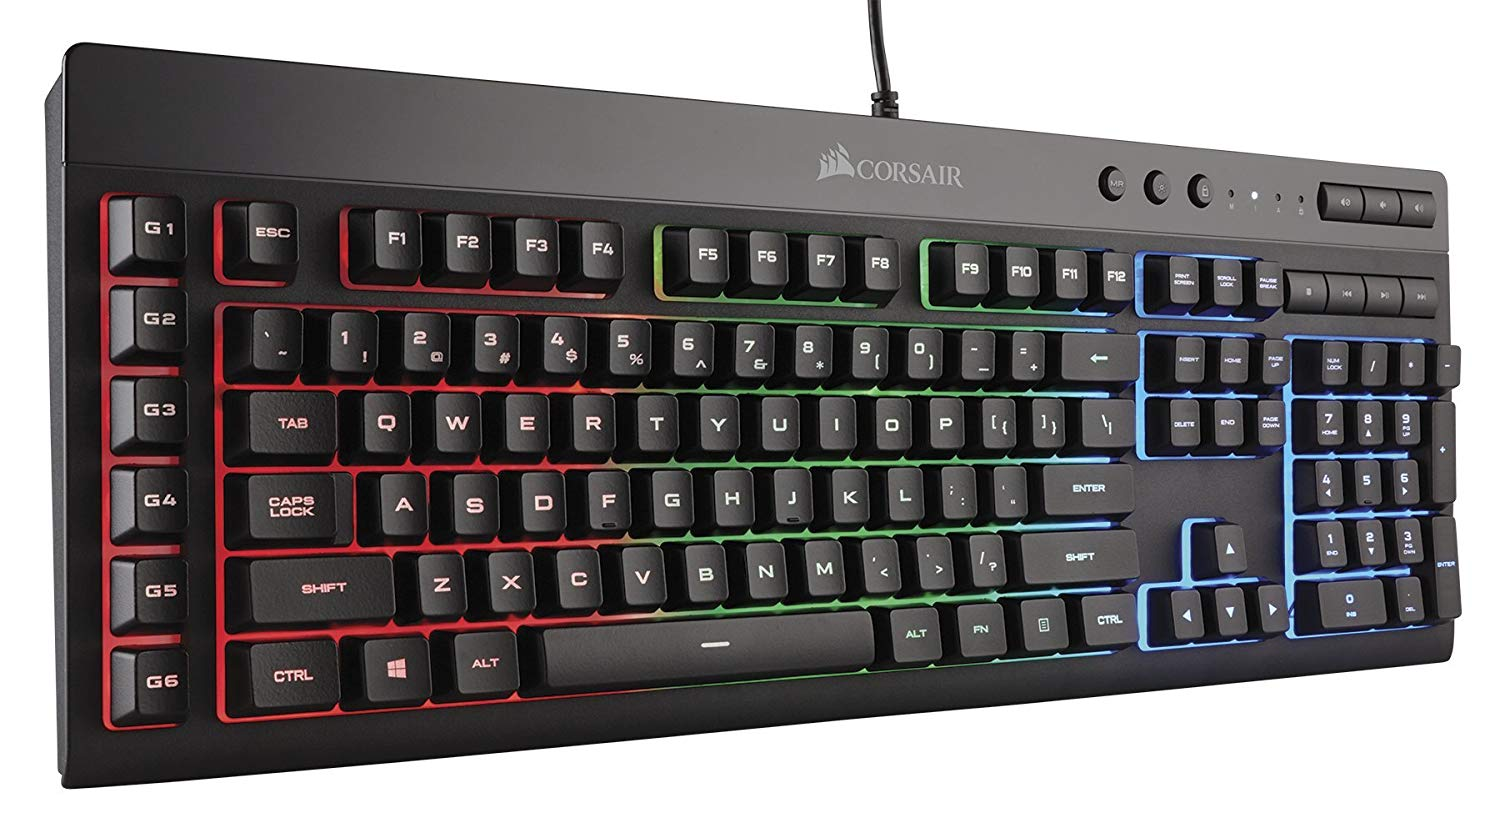 Corsair K55 RGB gaming keyboard